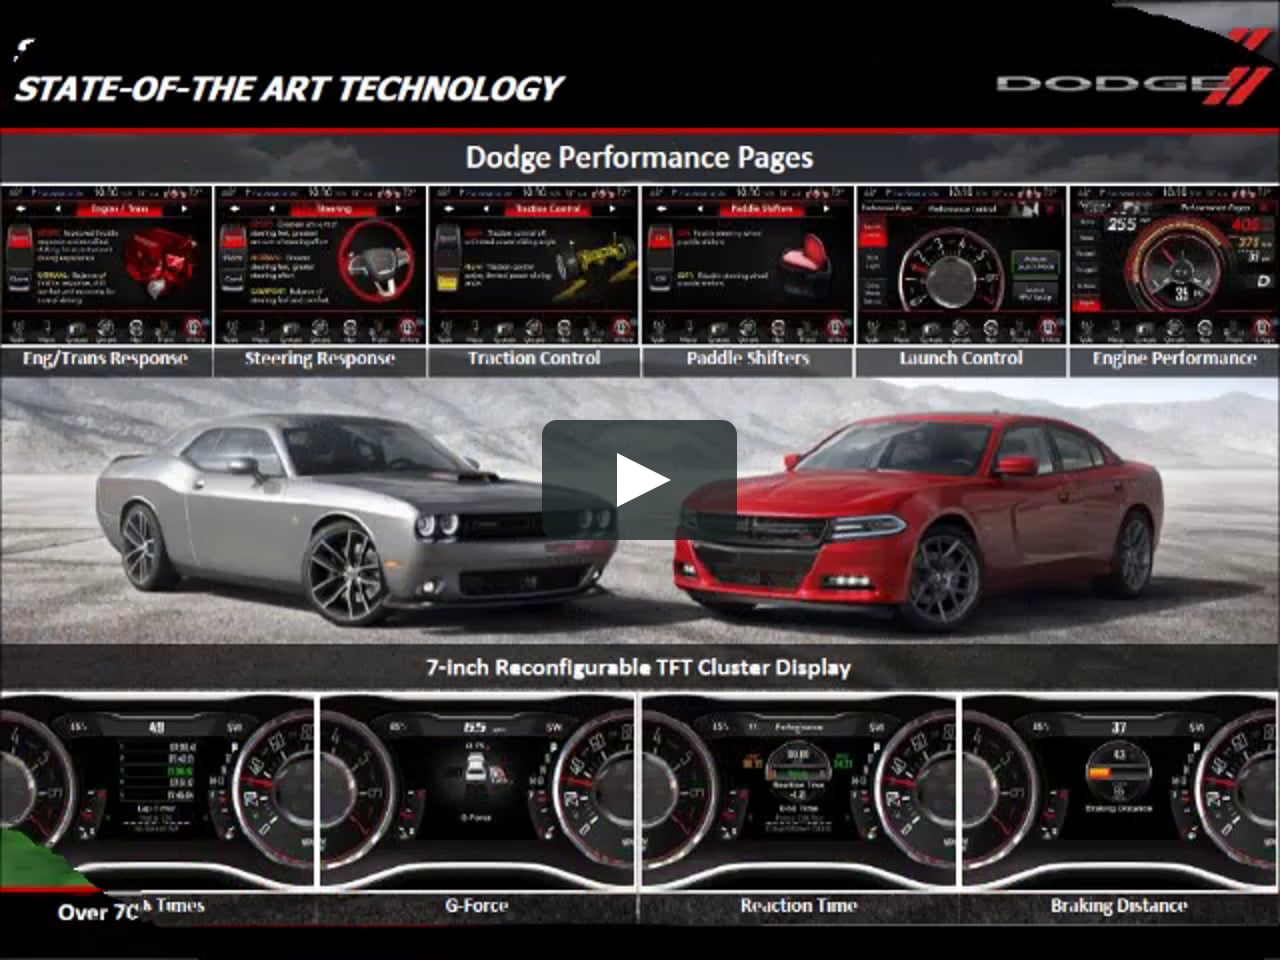 all new 2015 dodge charger and challenger in louisville ky oxmoor chrysler dodge jeep ram on vimeo. Black Bedroom Furniture Sets. Home Design Ideas